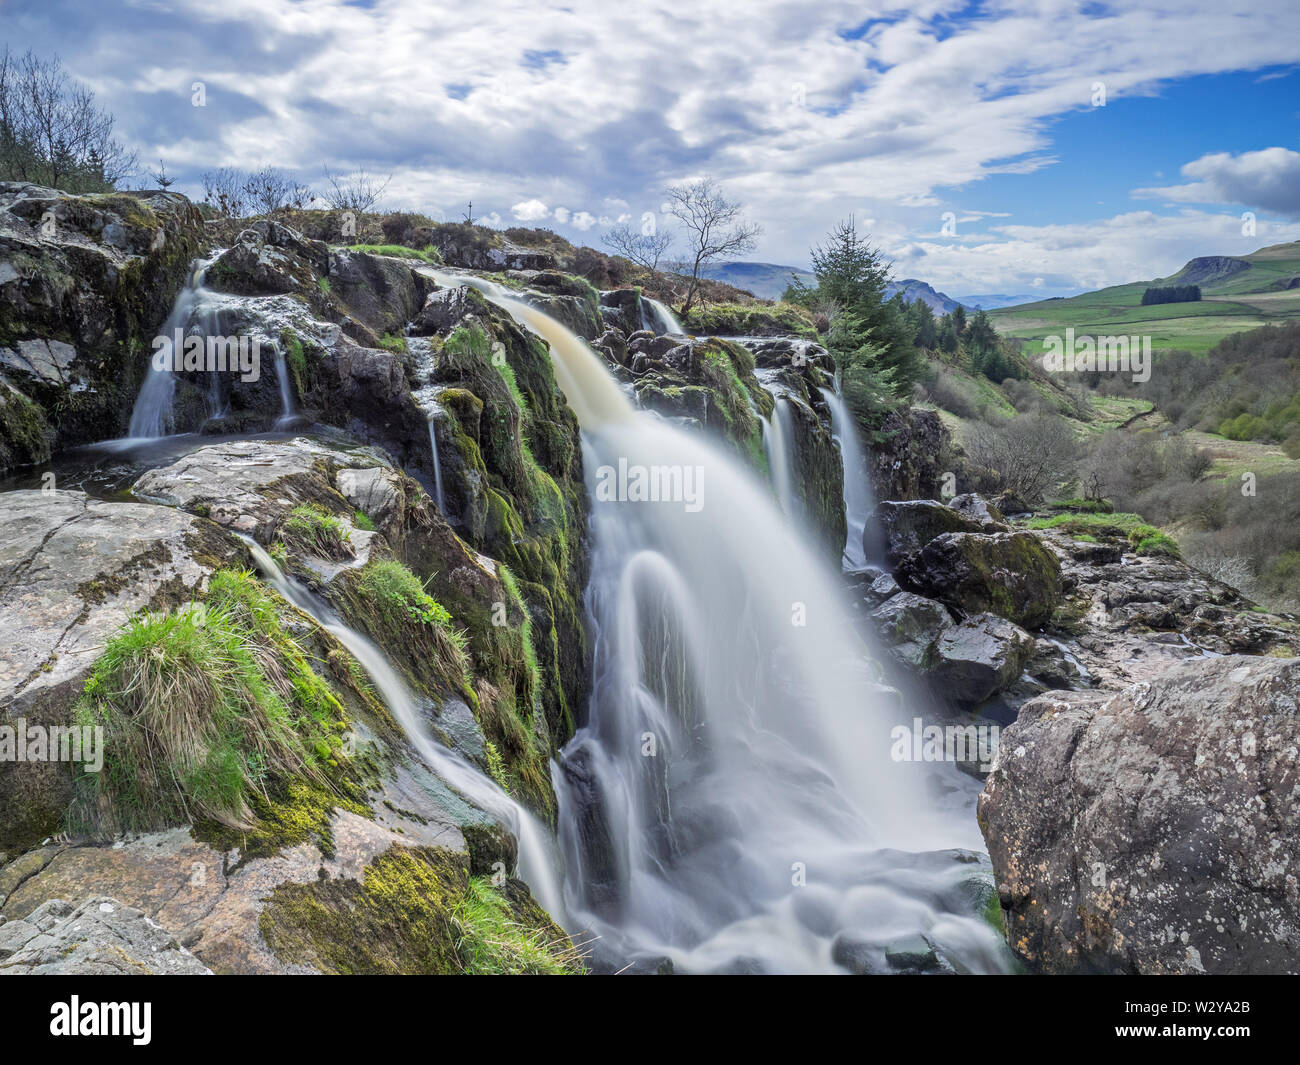 Loup of Fintry - Stock Image